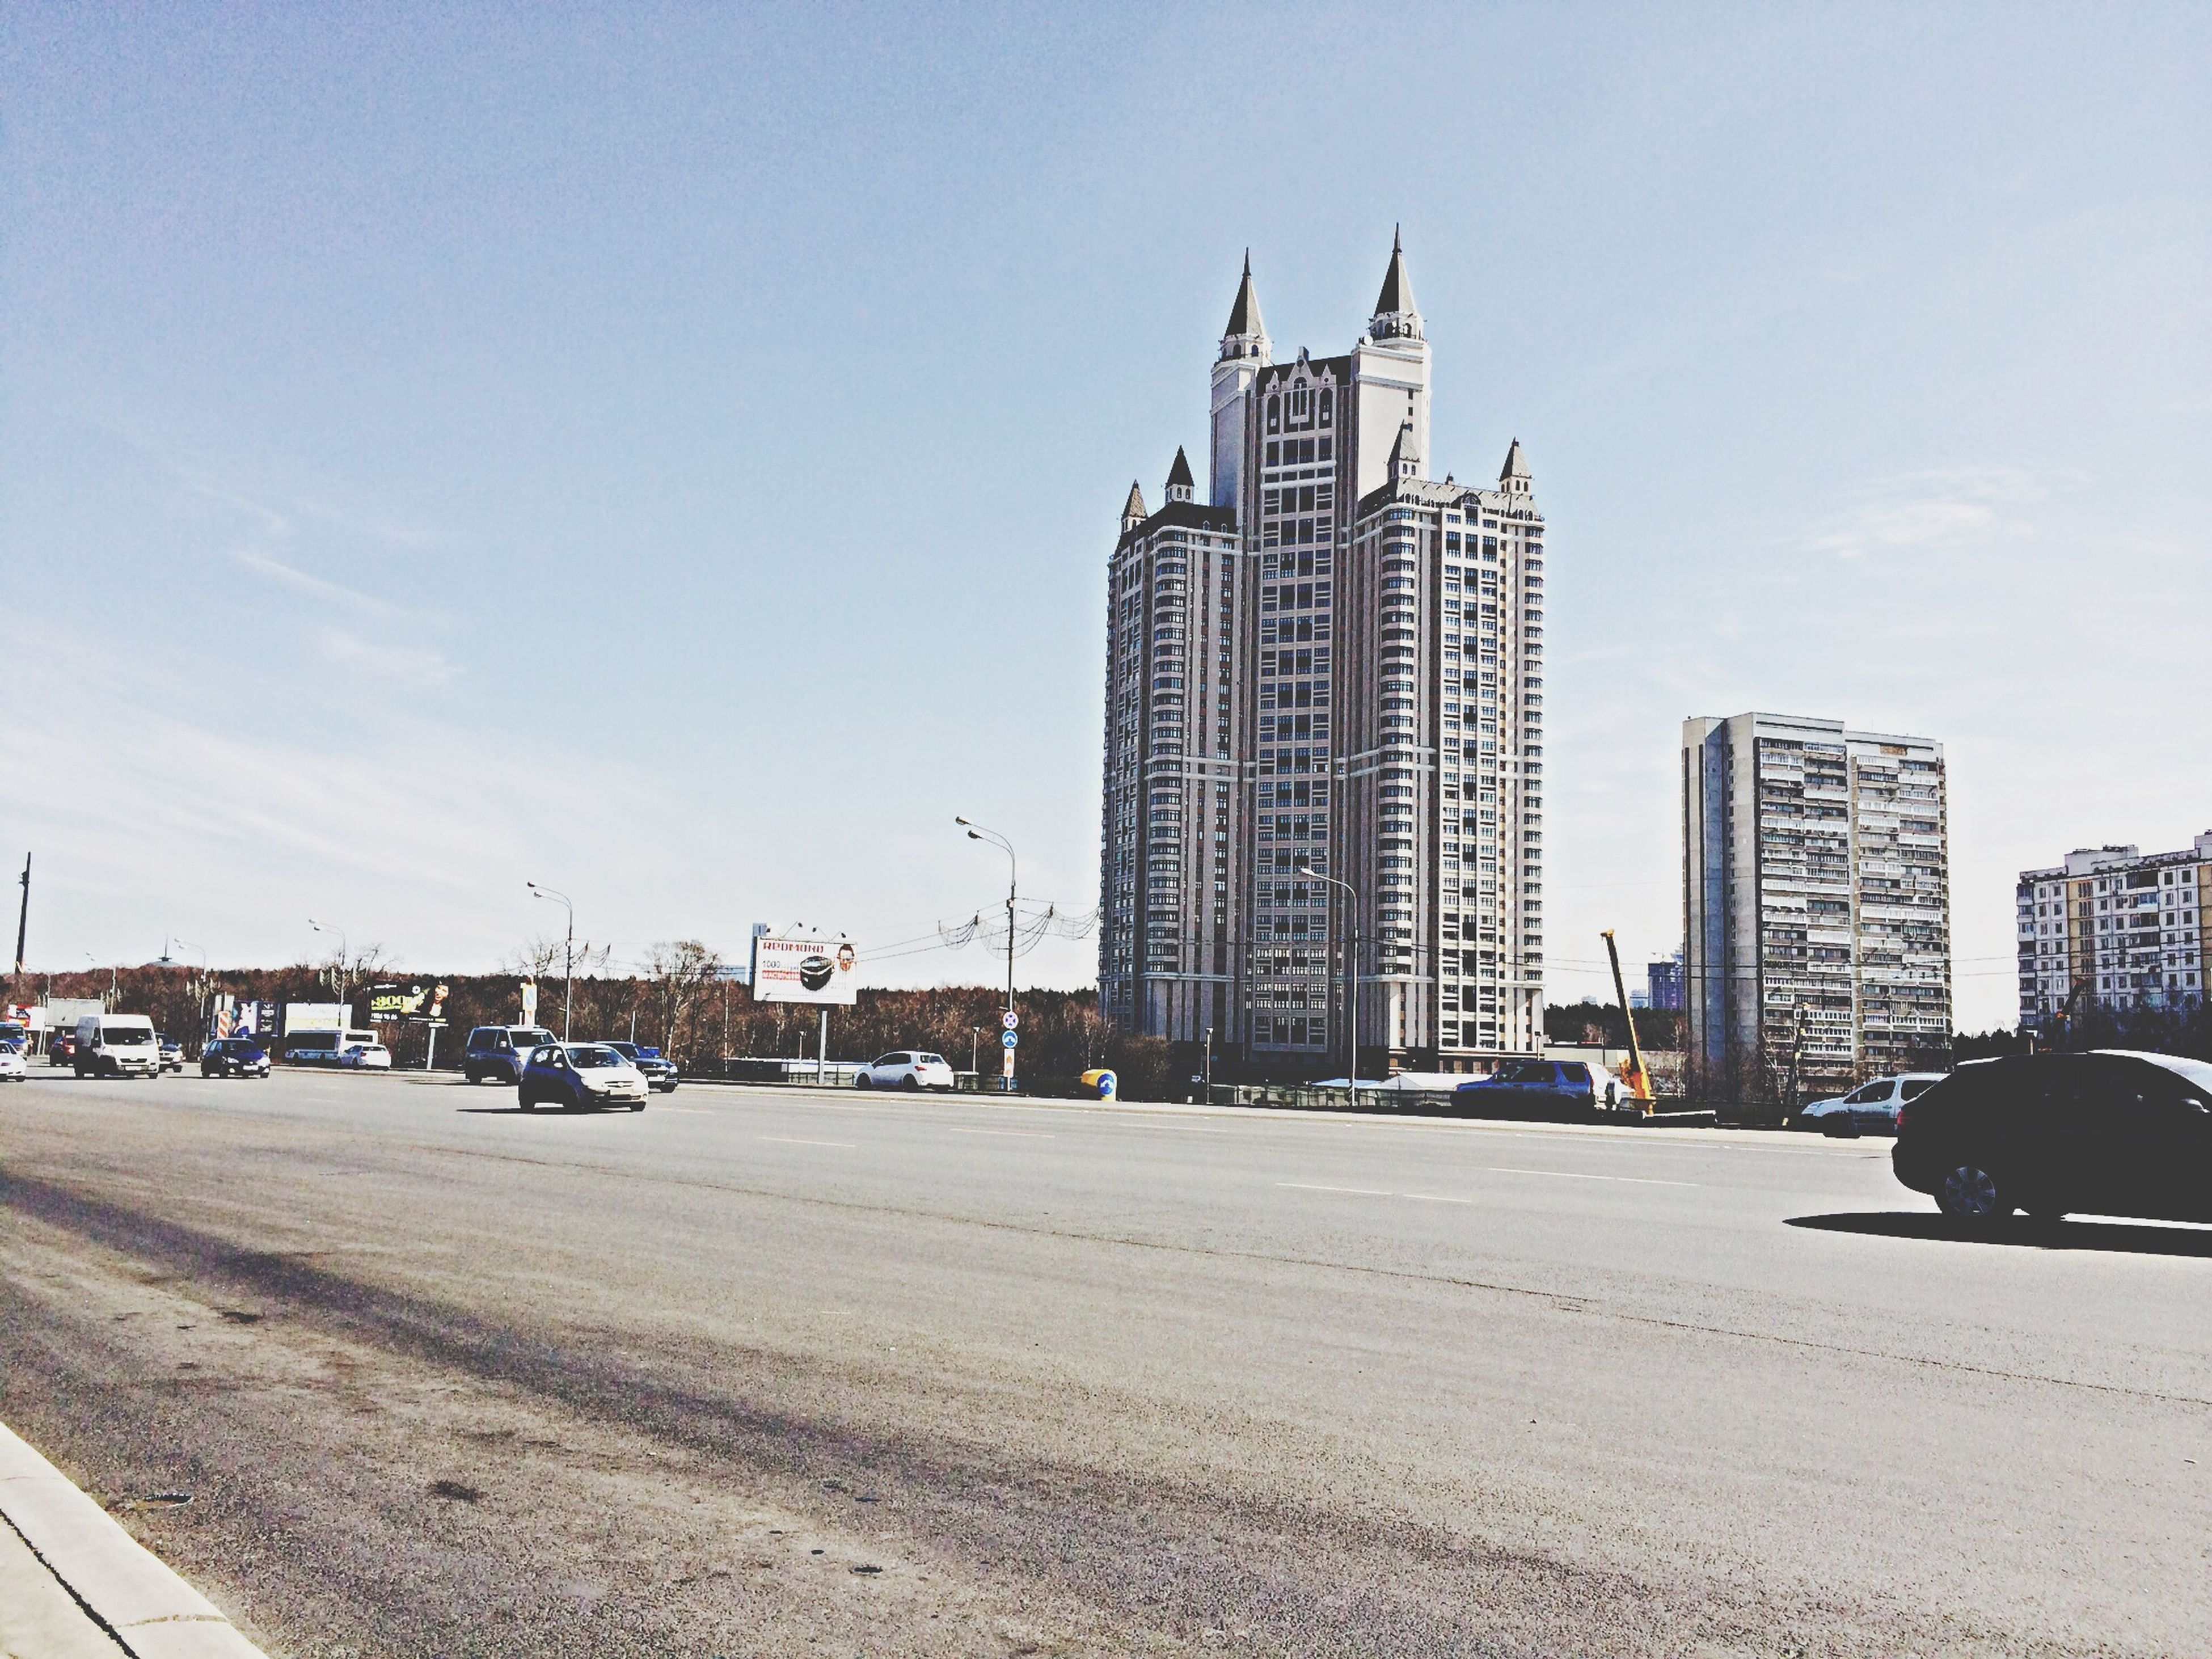 building exterior, architecture, built structure, city, transportation, clear sky, street, road, tower, sky, car, mode of transport, copy space, skyscraper, land vehicle, day, tall - high, incidental people, building, blue